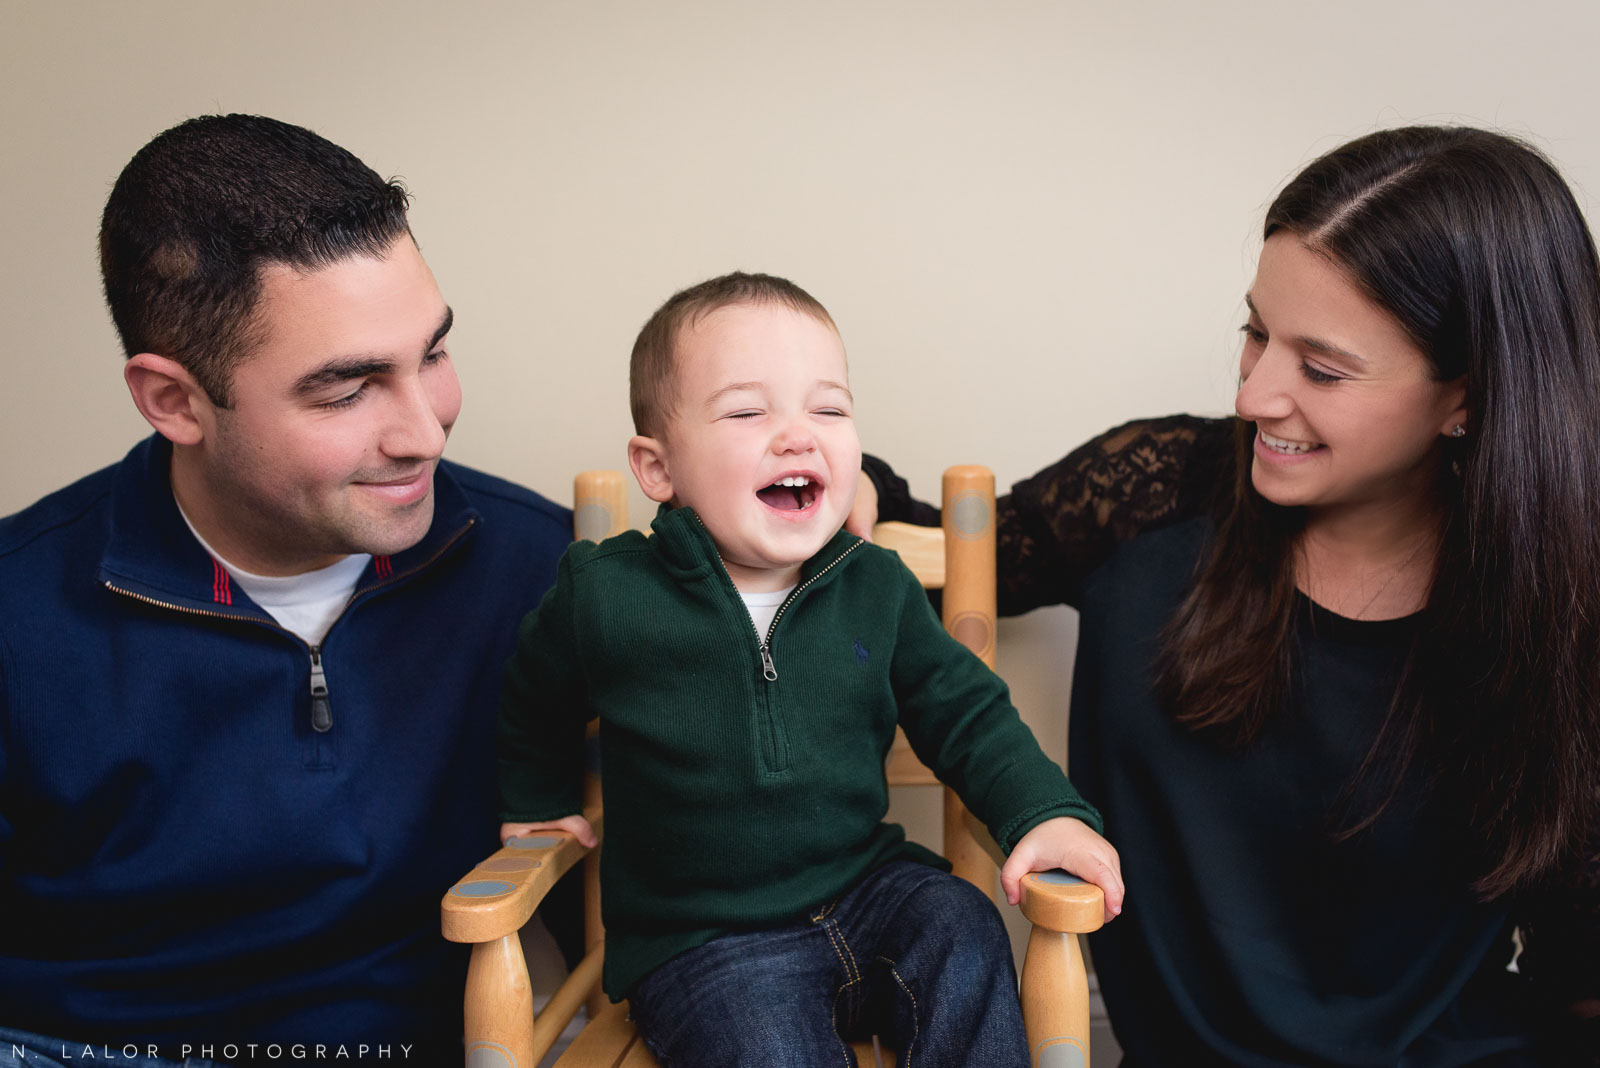 Laughing as a family. Fun family session with N. Lalor Photography.